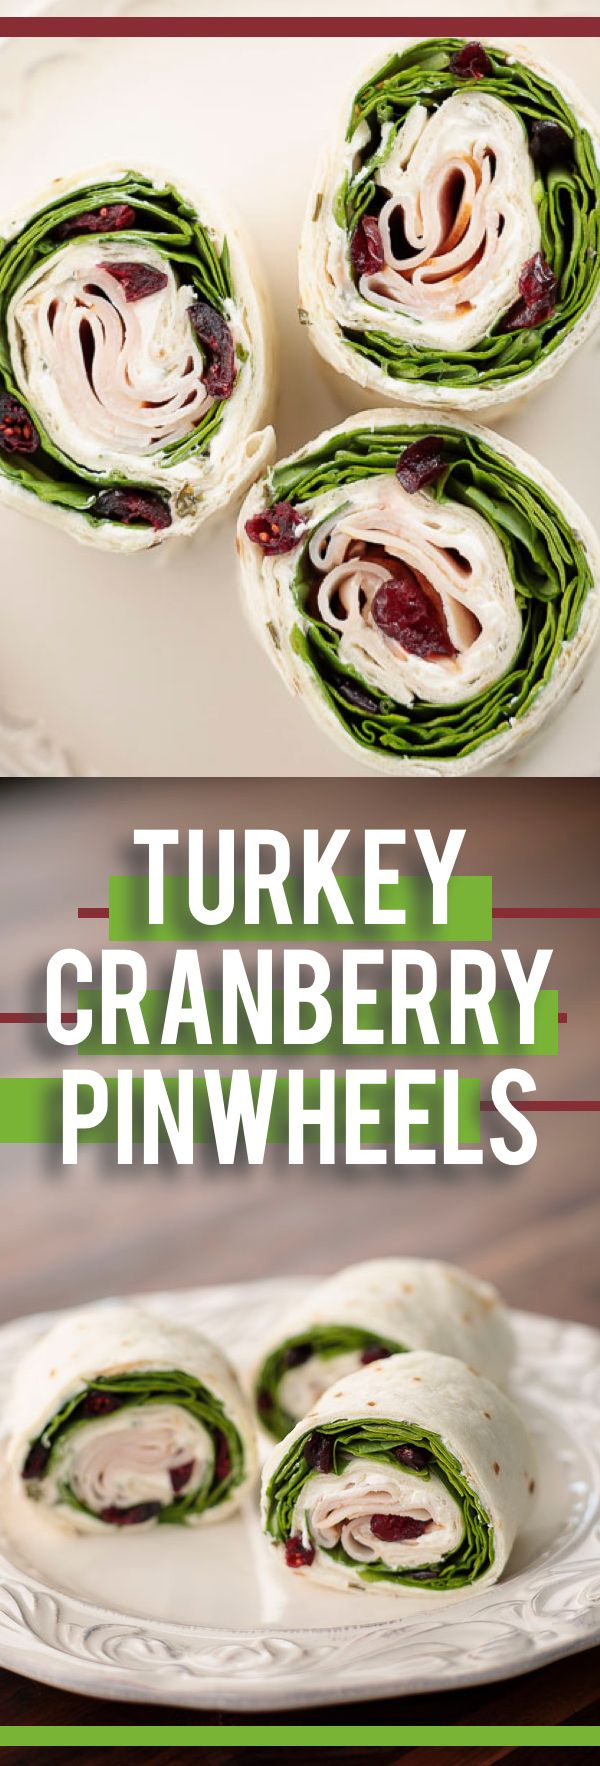 These are super light but packed with tons of flavor. Perfect for your next holiday get together!